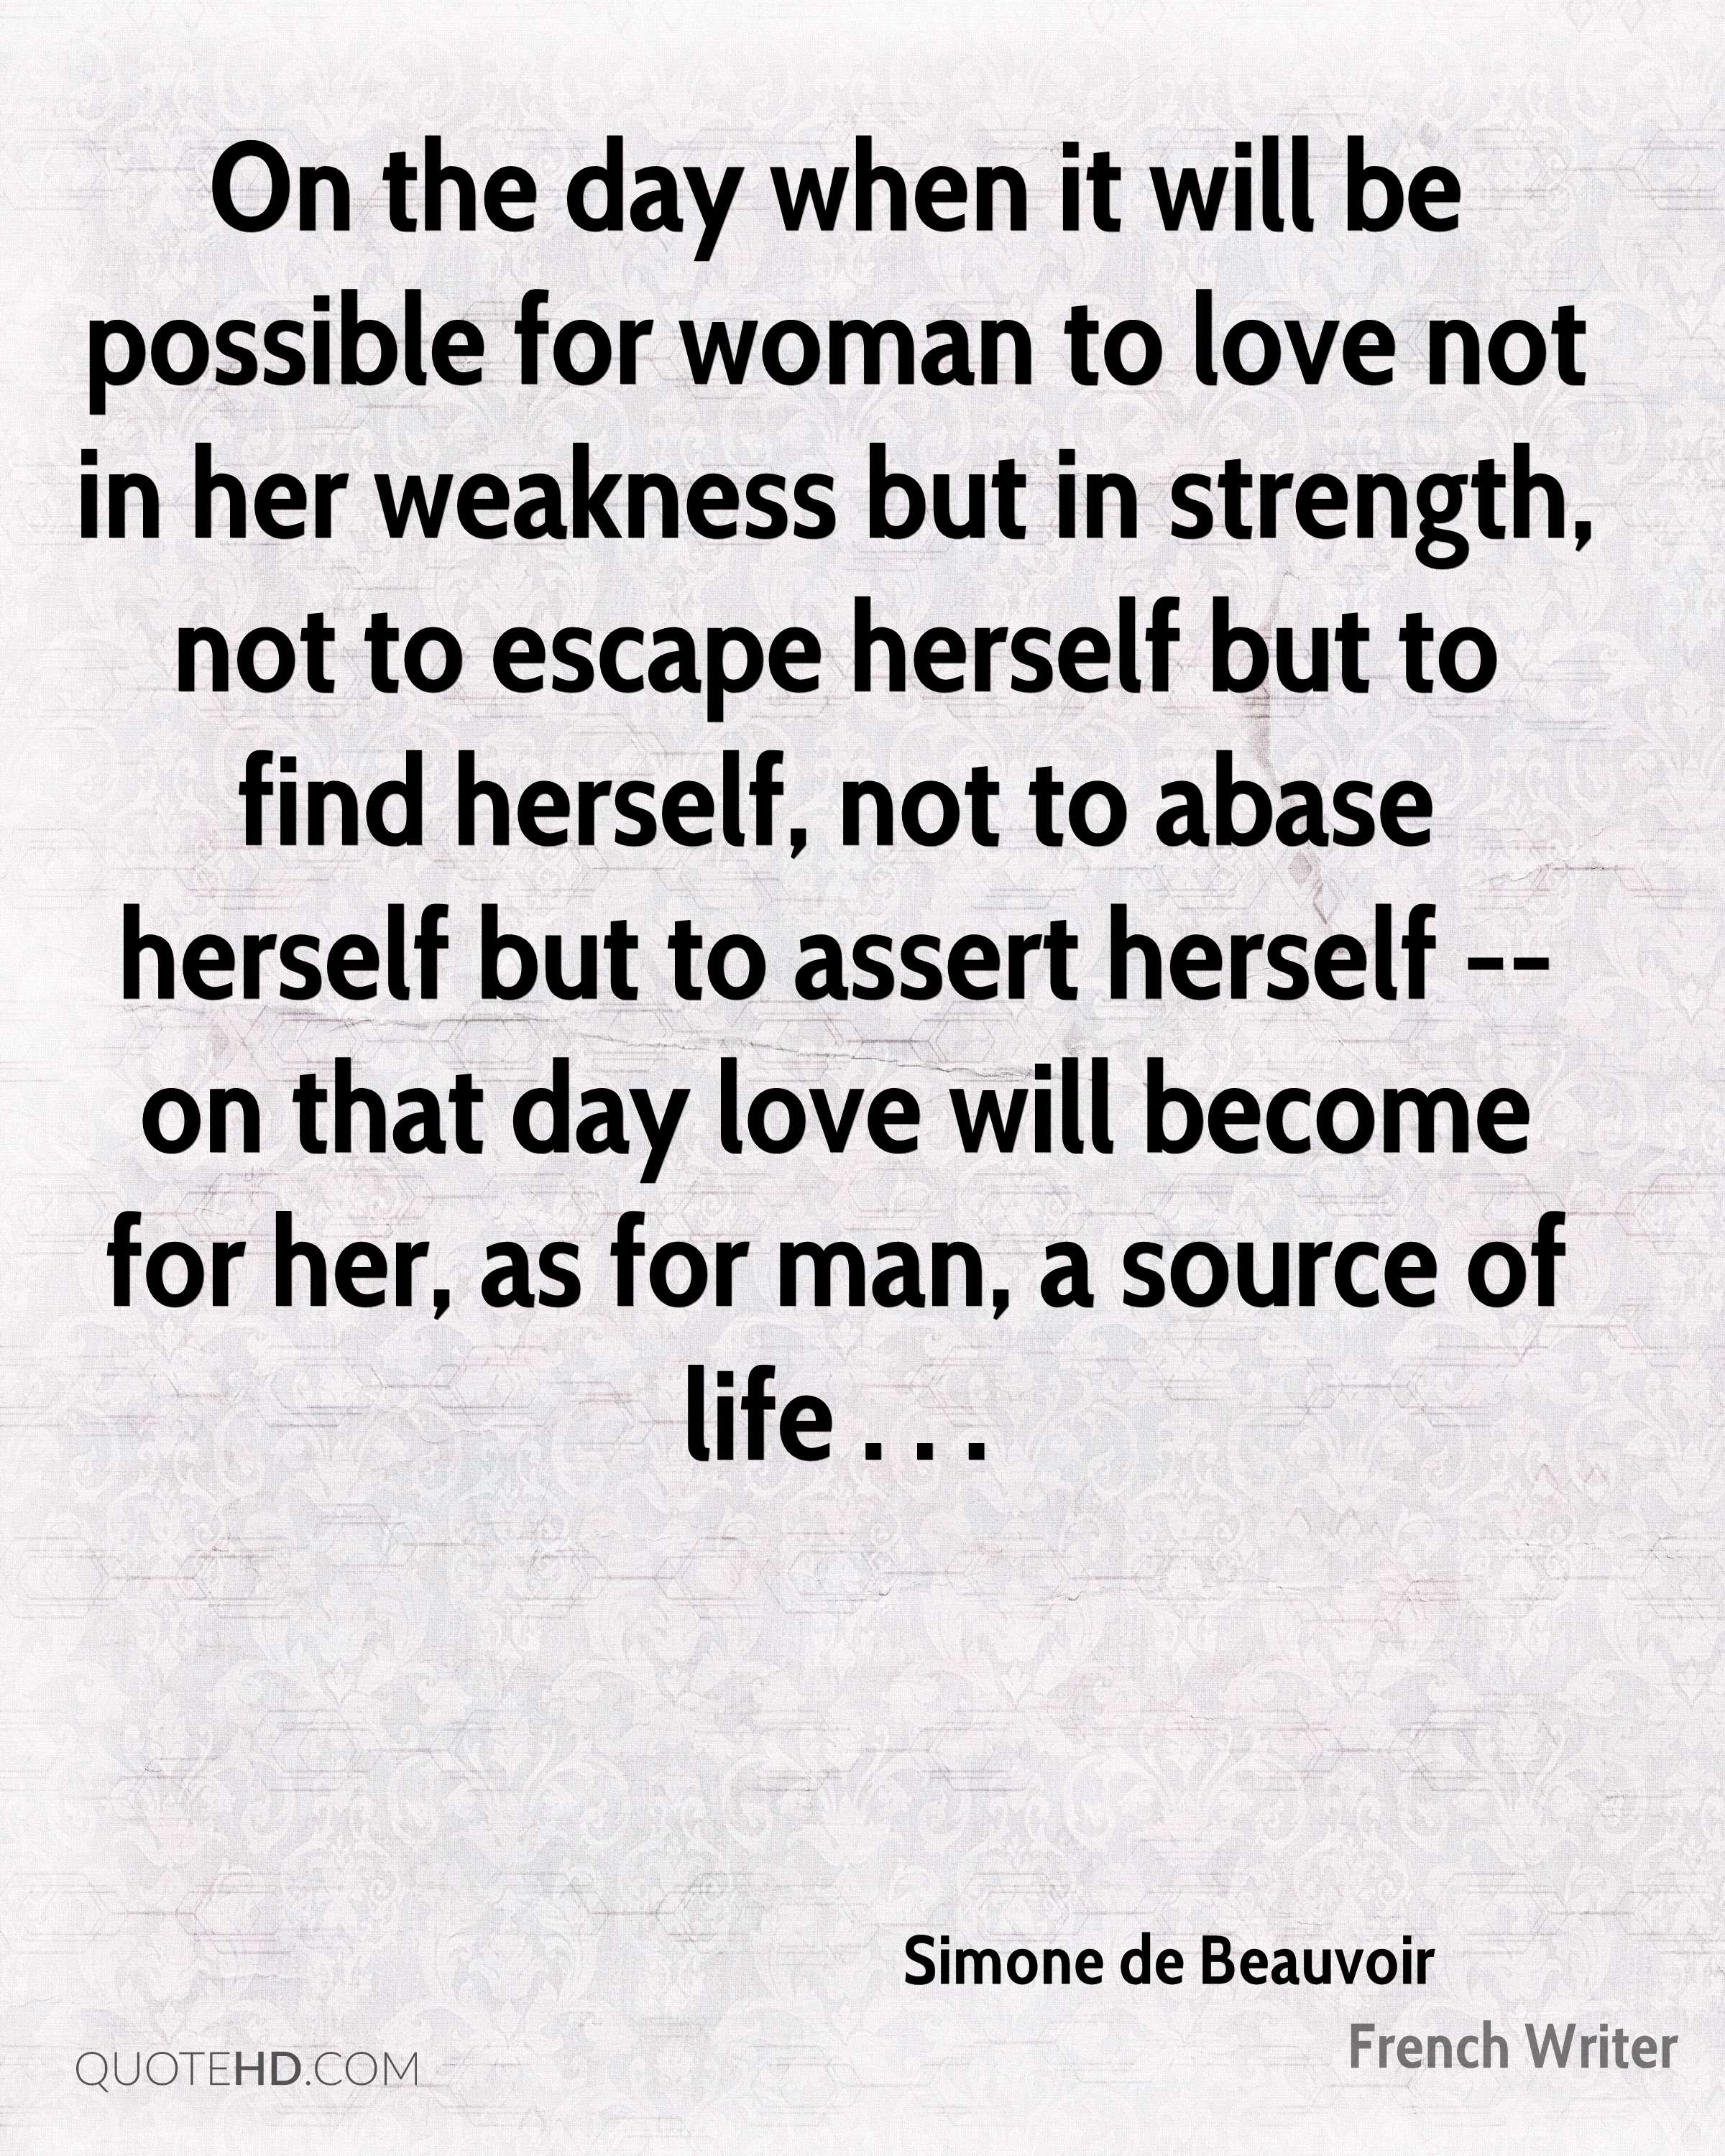 On the day when it will be possible for woman to love not in her weakness but in strength, not to escape herself but to find herself, not to abase herself but to assert herself -- on that day love will become for her, as for man, a source of life . . .